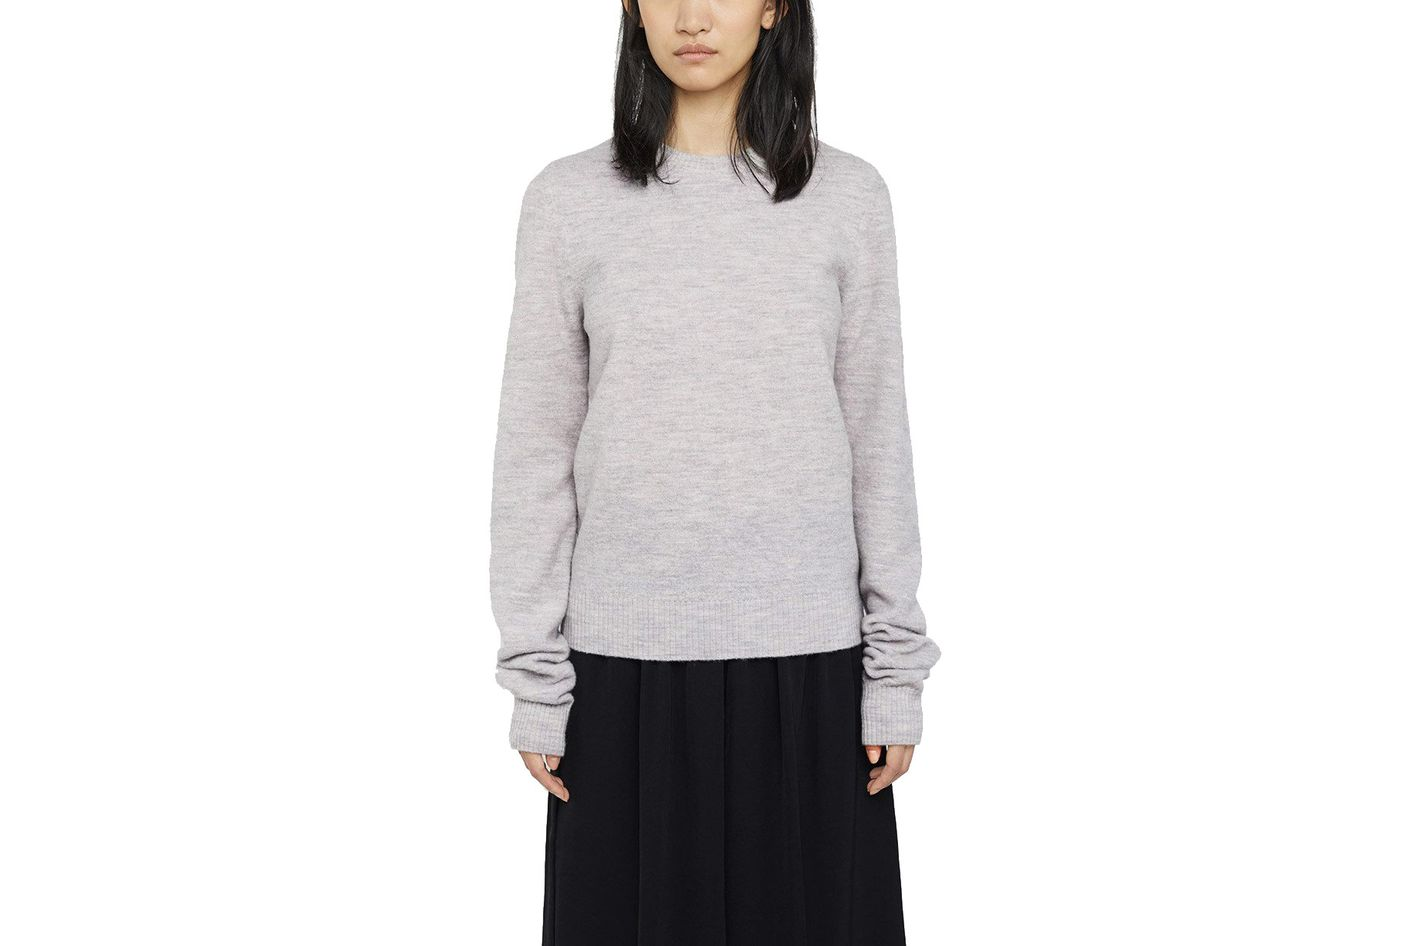 Acne Studios Mari Sweater